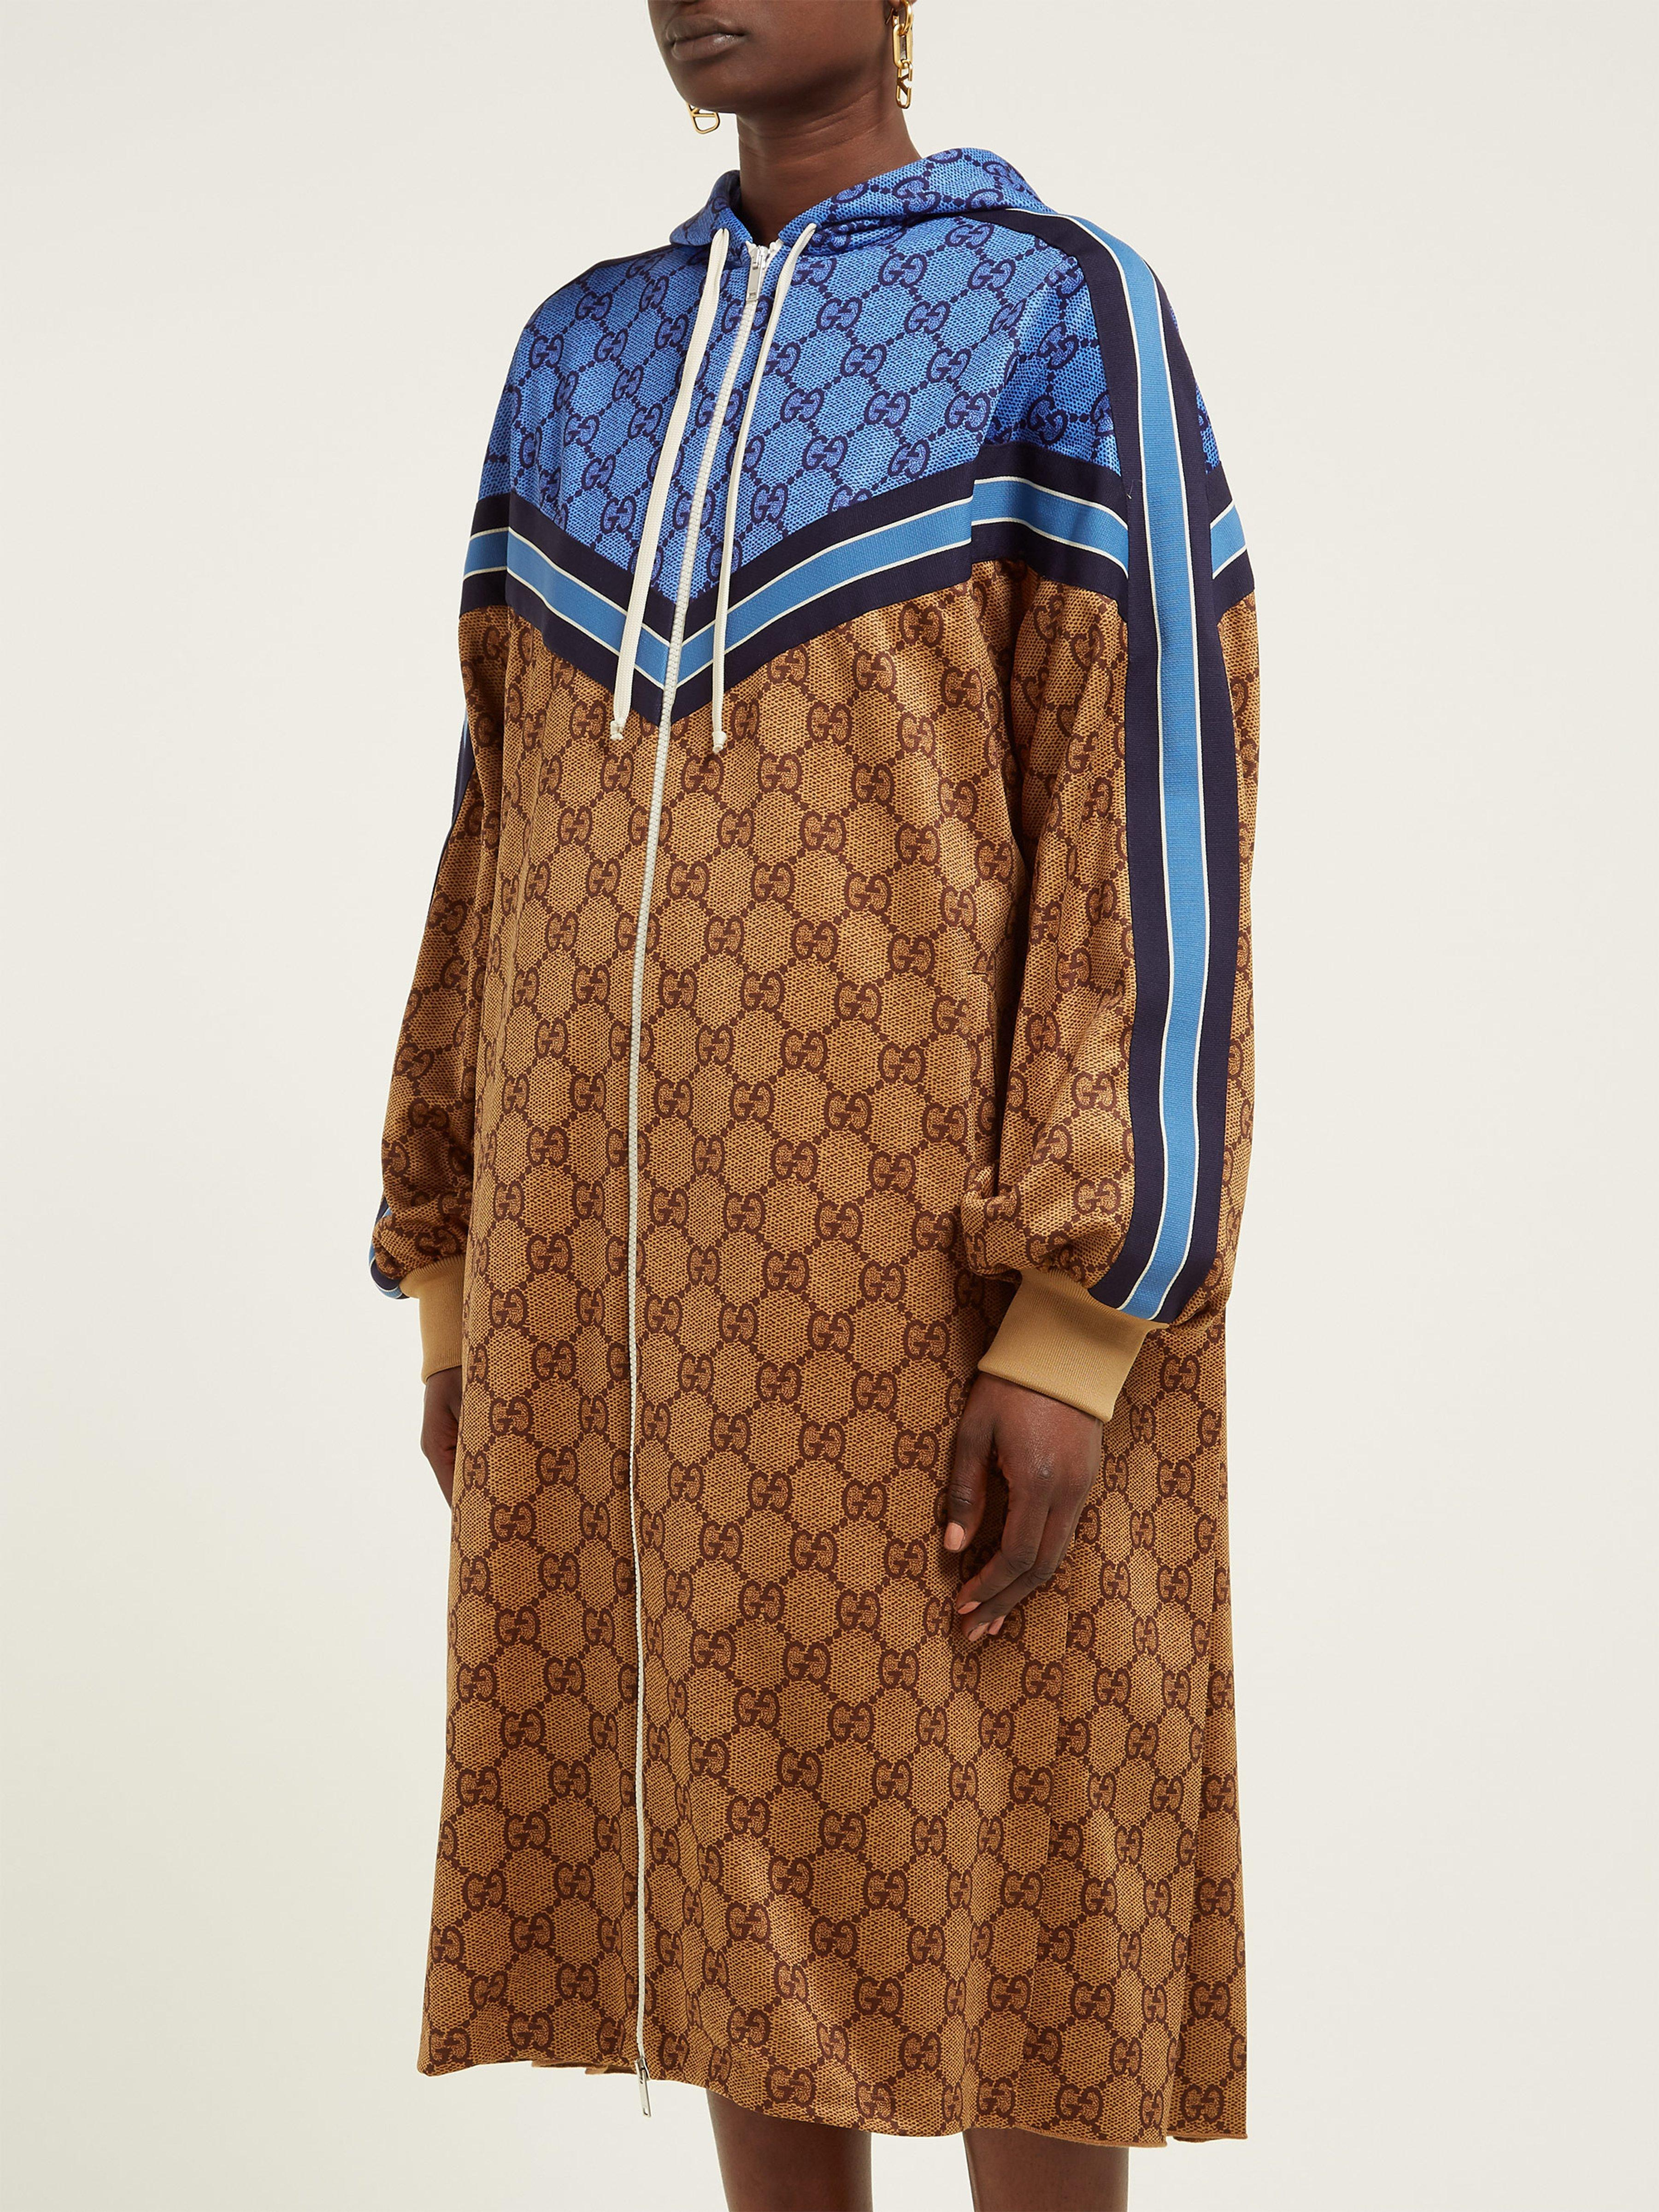 0ddd99e32 Gucci - Multicolor Gg Technical Jersey Hooded Dress - Lyst. View fullscreen